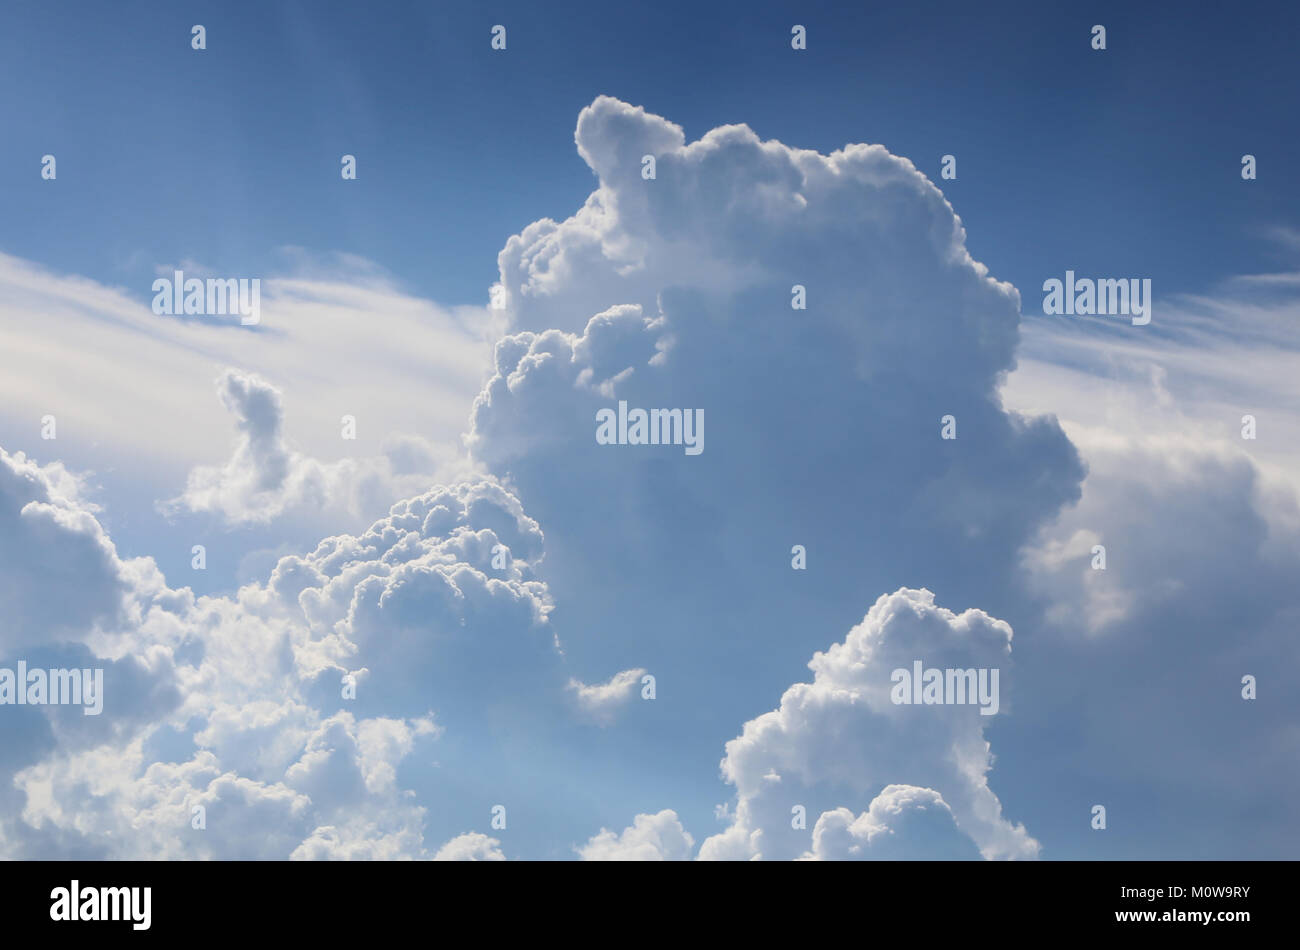 The blue sky with the cumulus clouds lit with the sun. - Stock Image